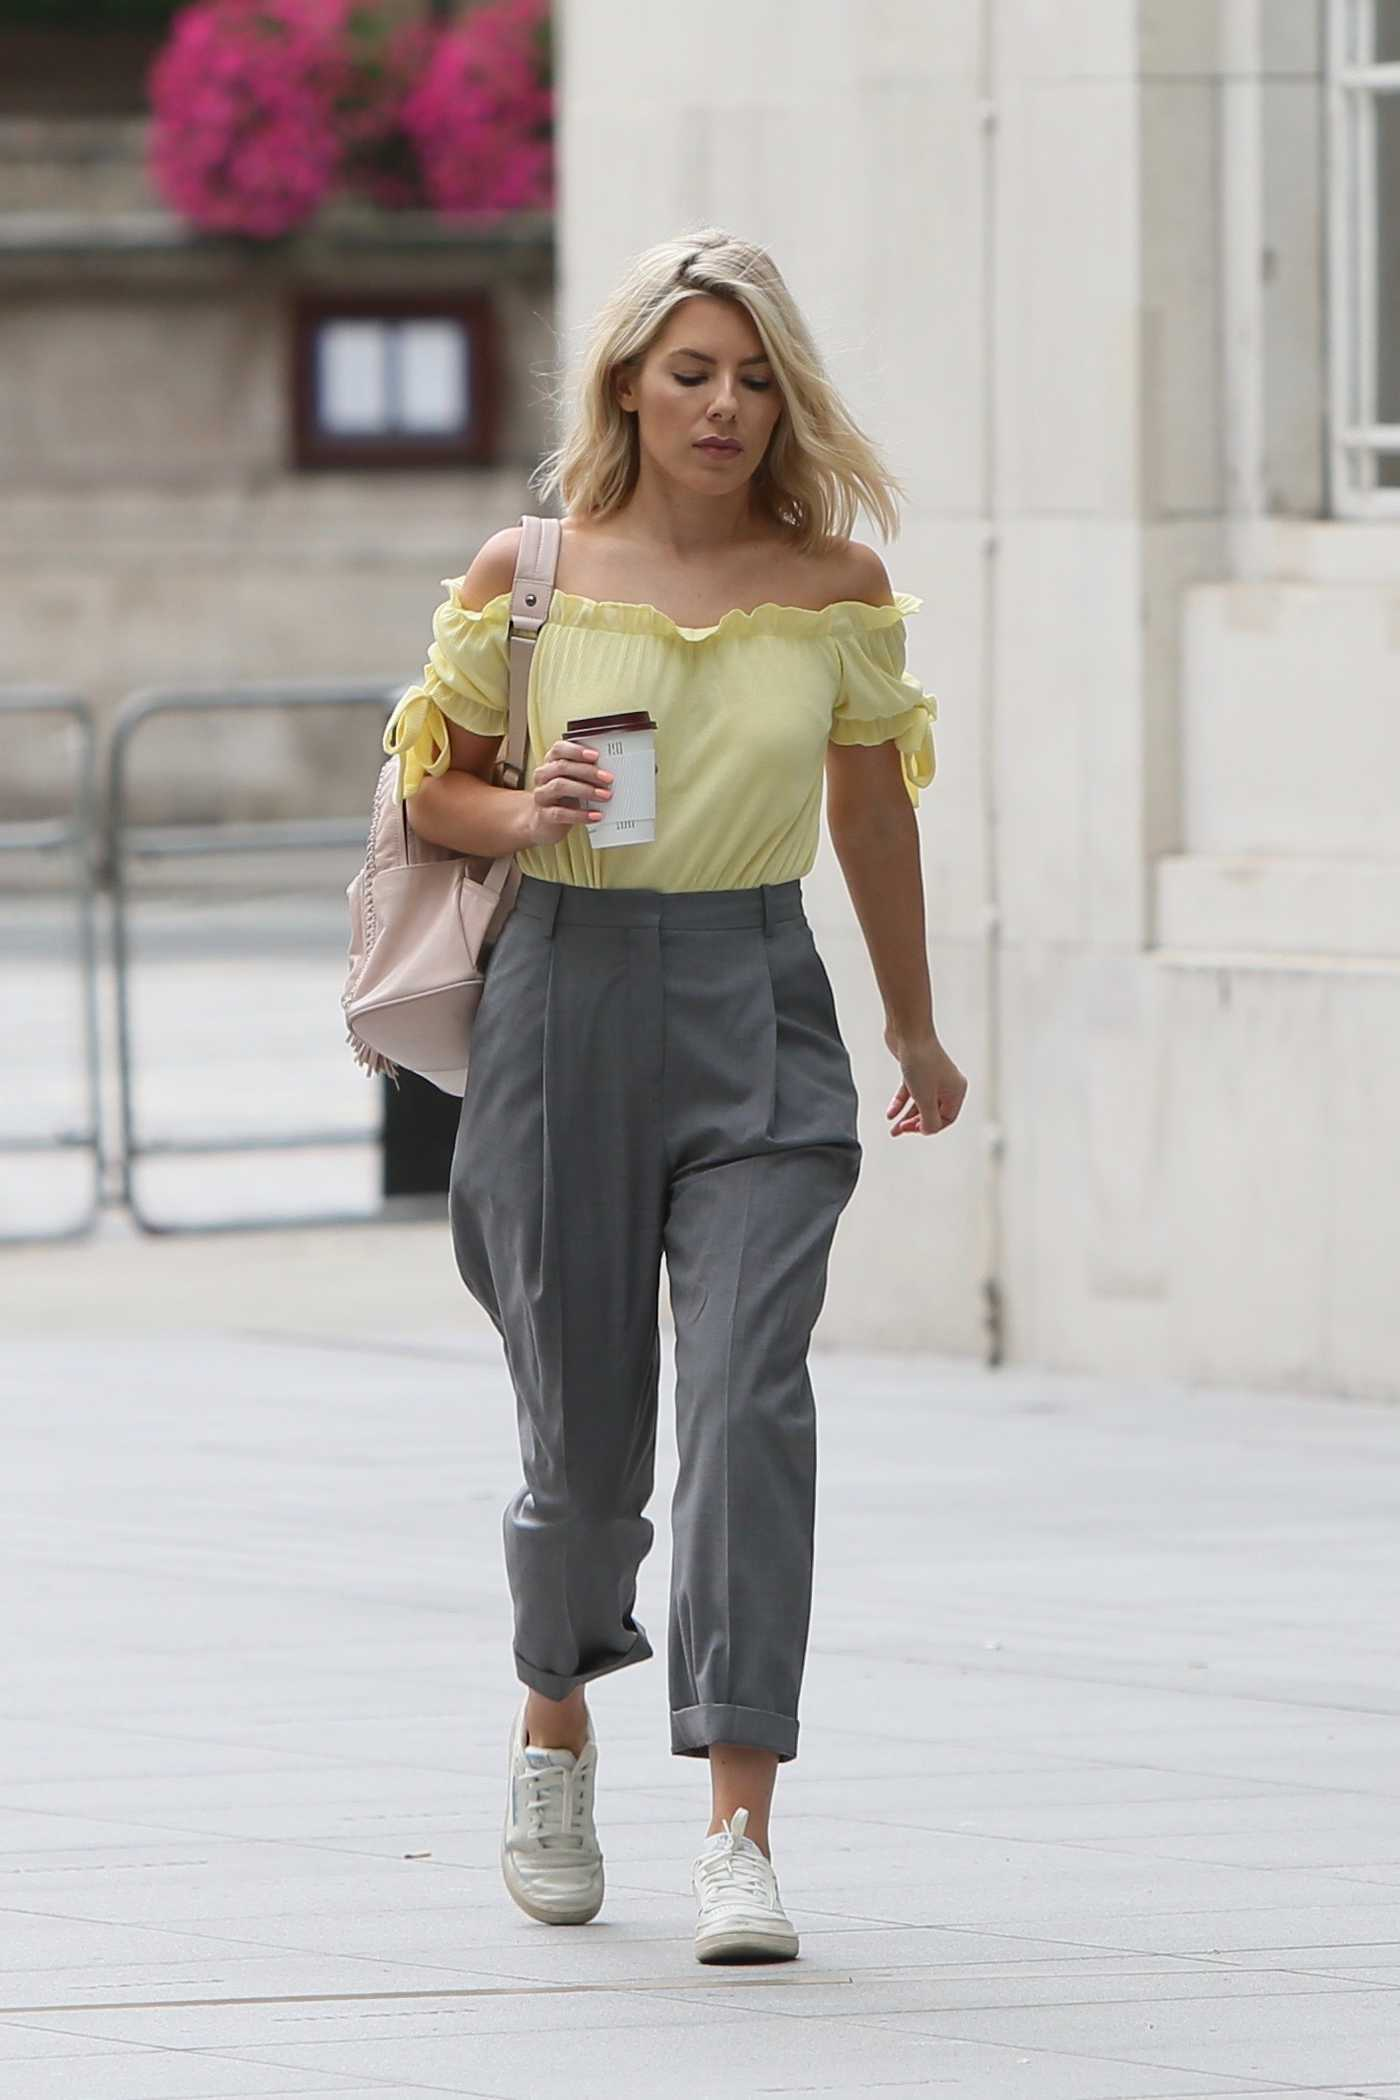 Mollie King in a Yellow Strapless Blouse Arrives at the BBC Radio 1 Studios in London 08/14/2018